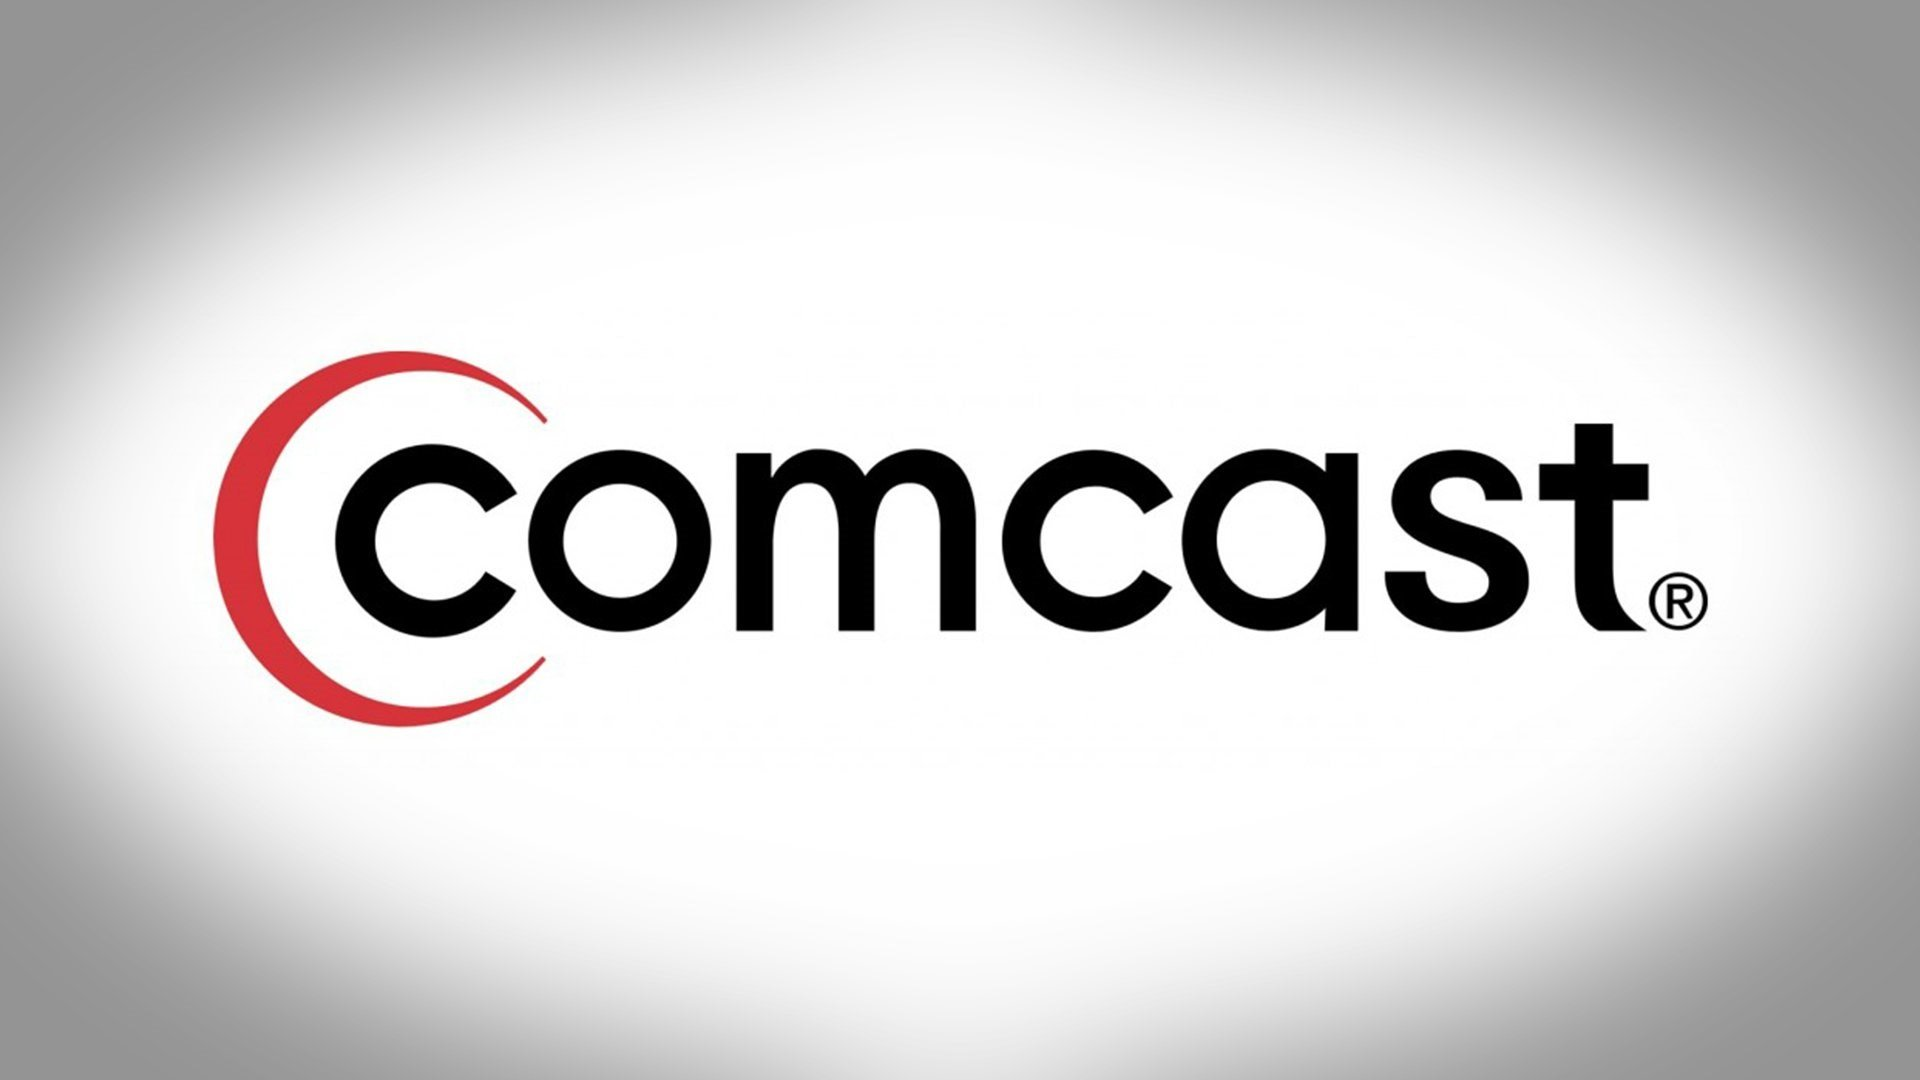 Comcast and Fox are having closed-door talks about a potential acquisition